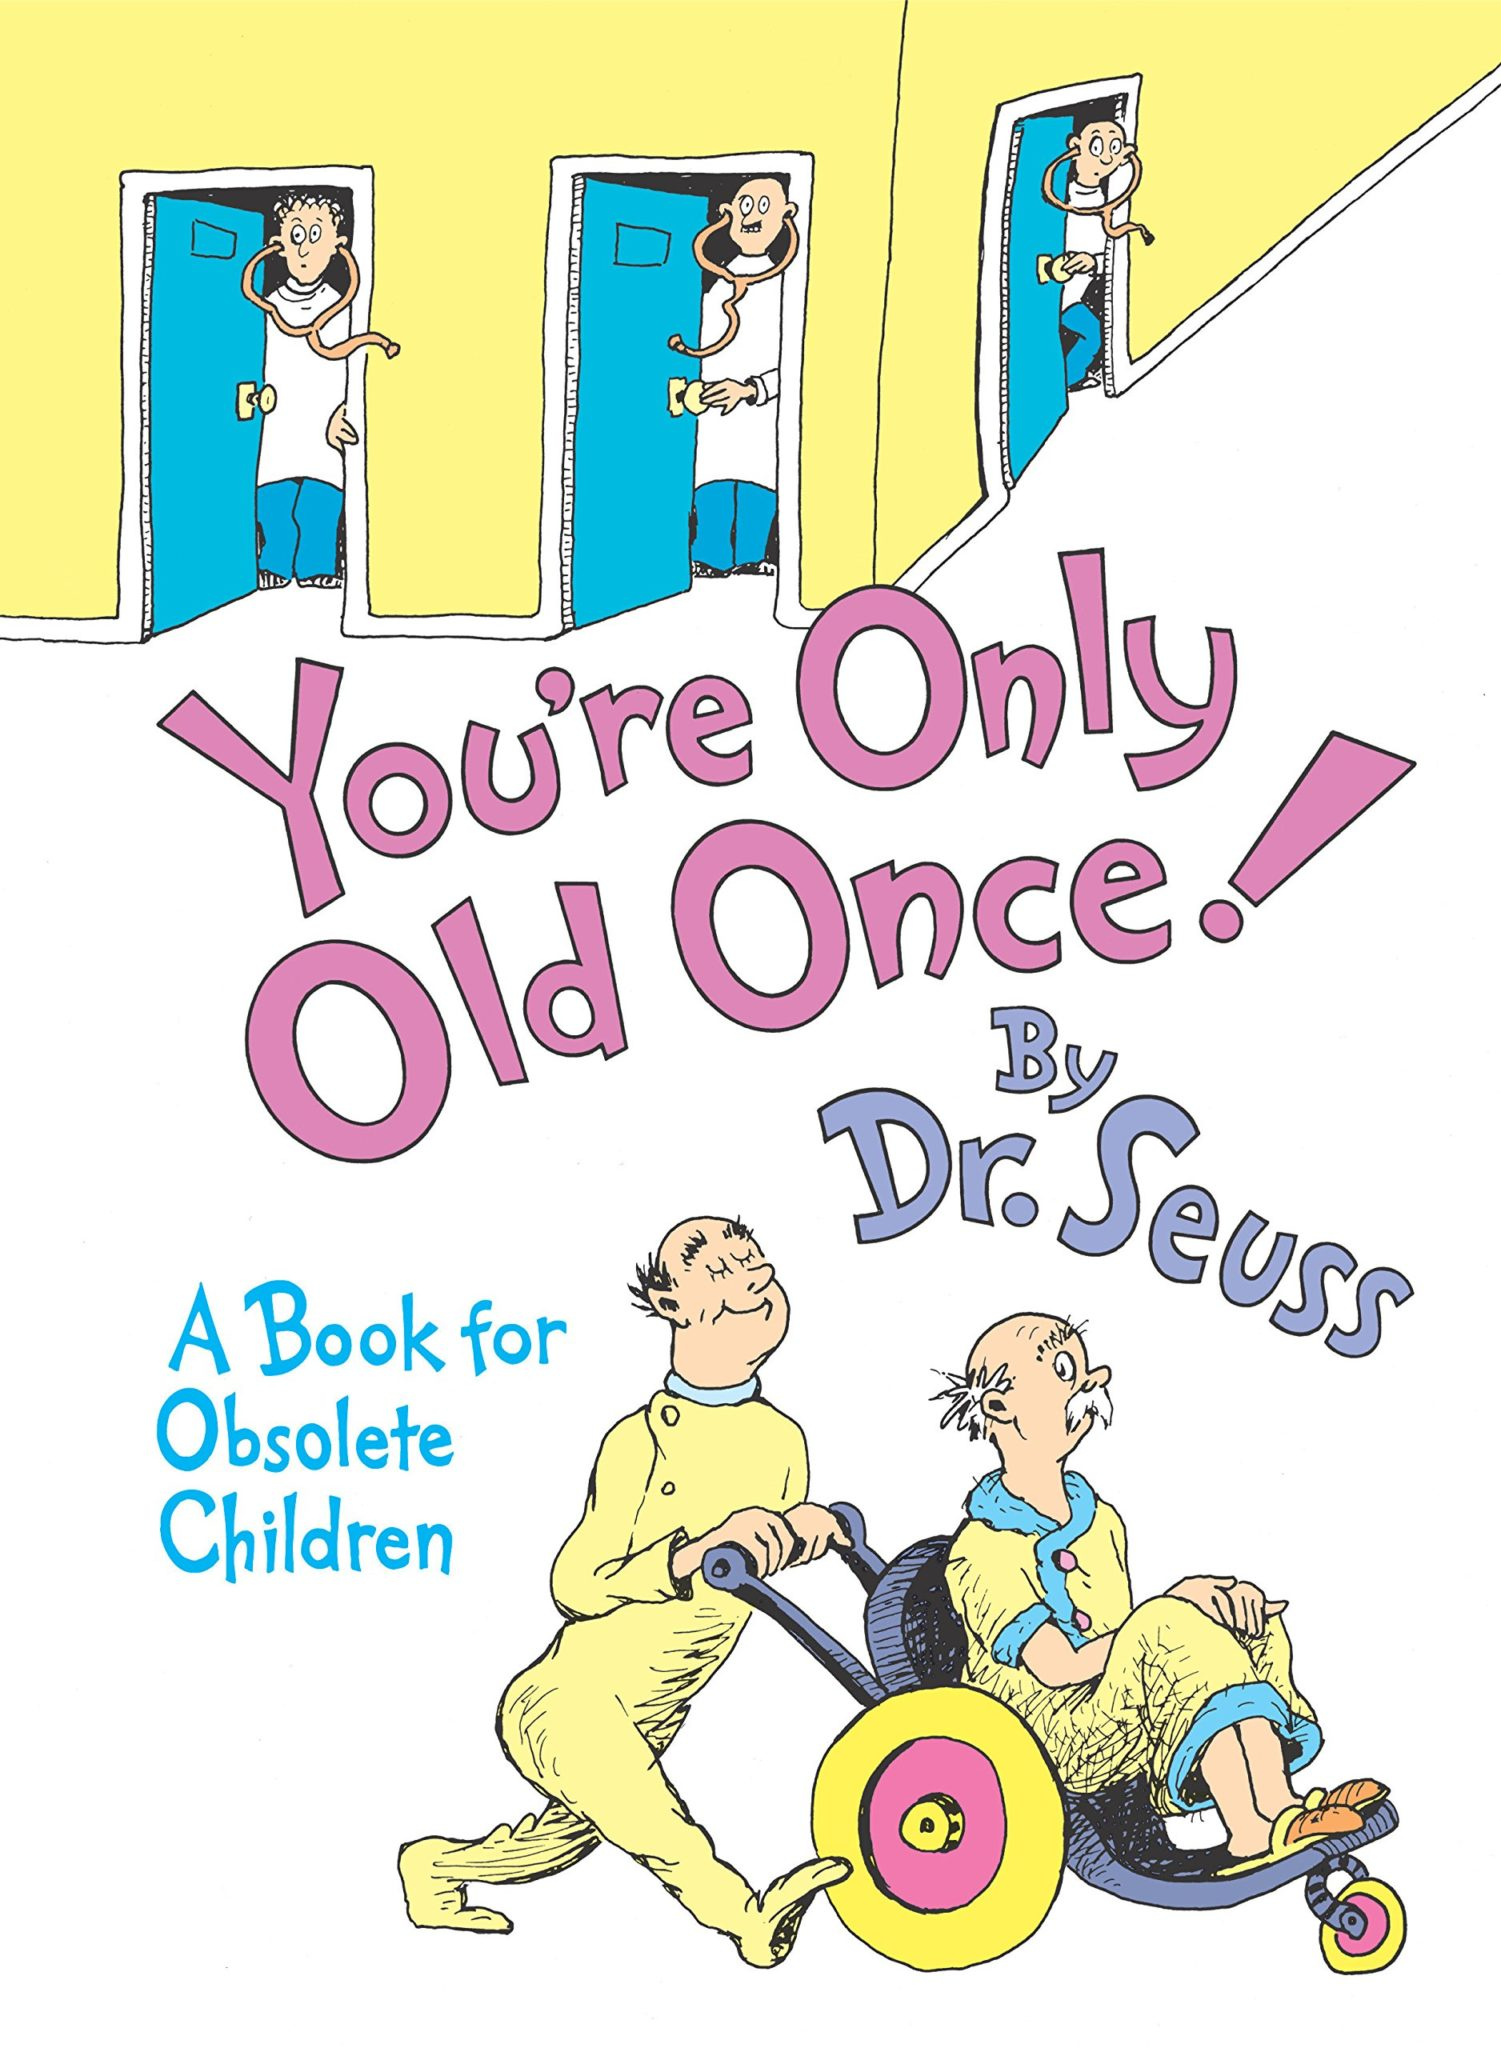 dr.-seuss-52-scaled